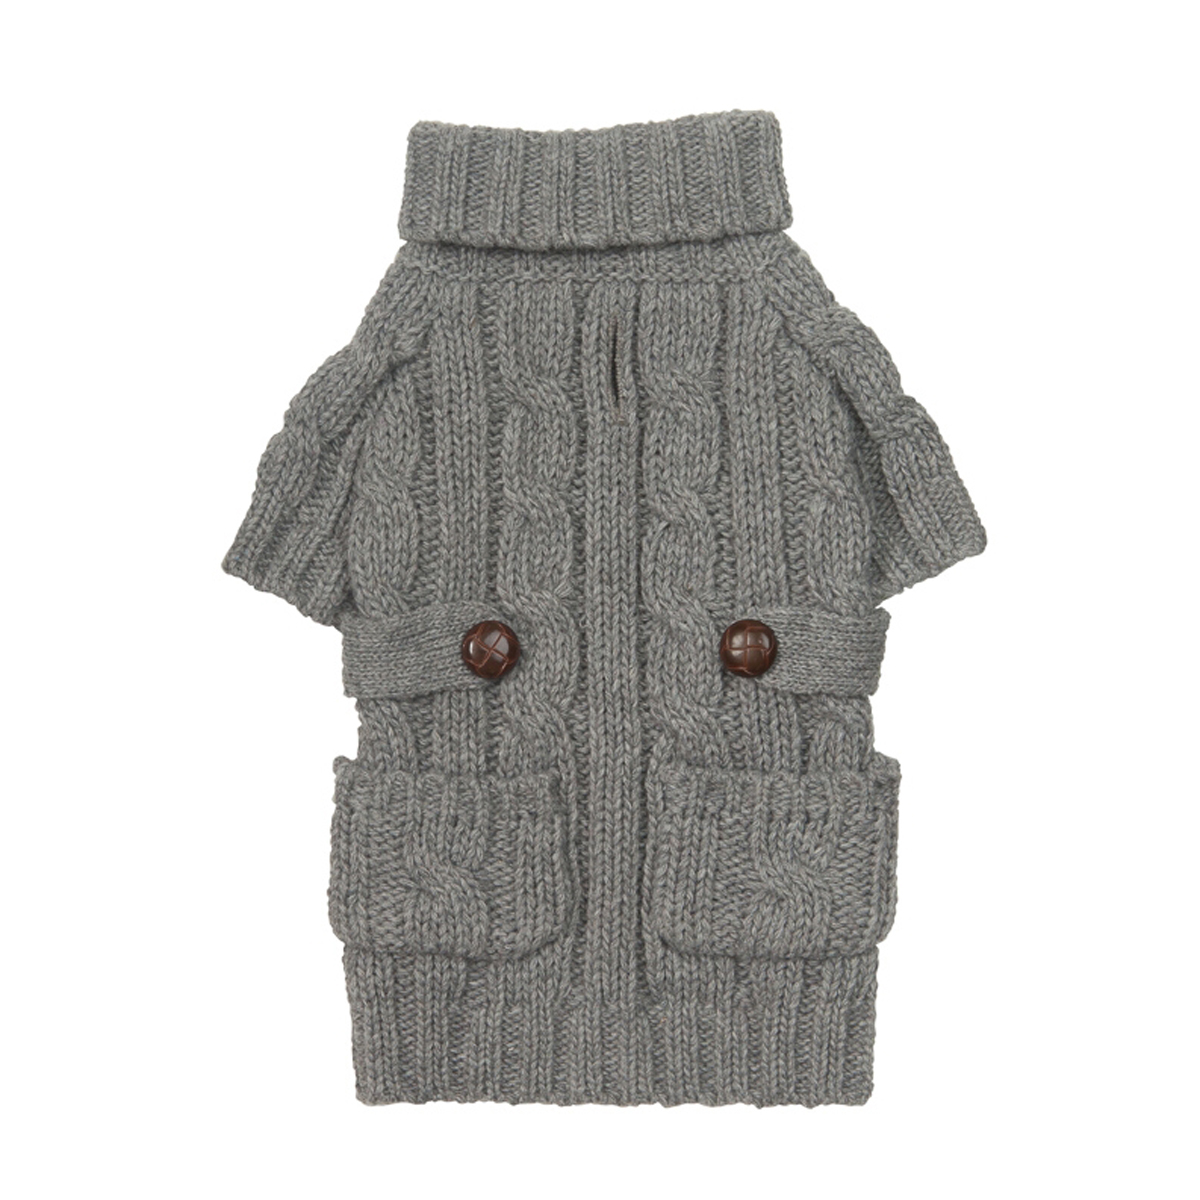 Pocket Cable Knit Dog Sweater - Heather Gray